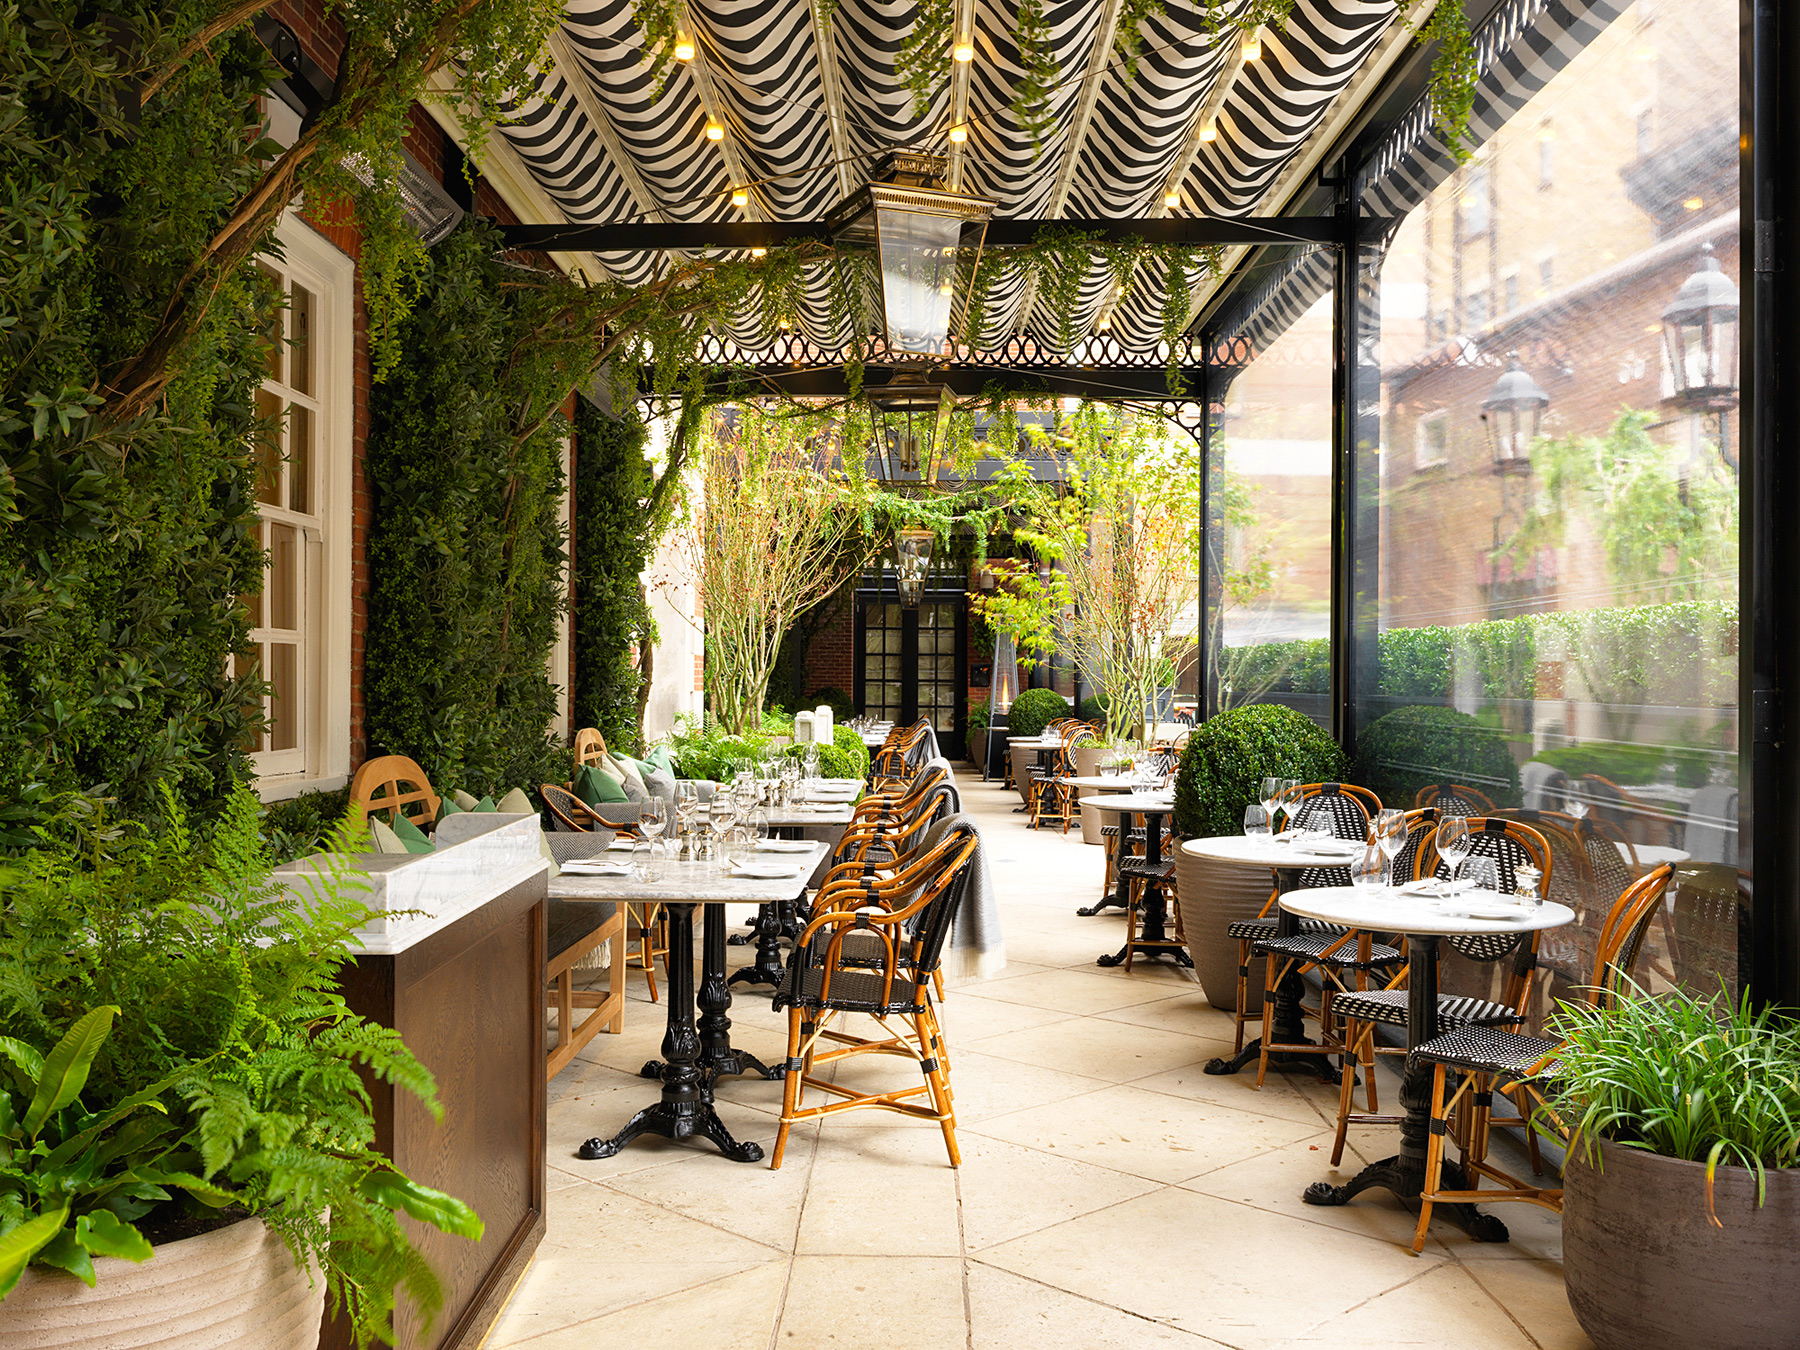 dalloway terrace at the bloomsbury london